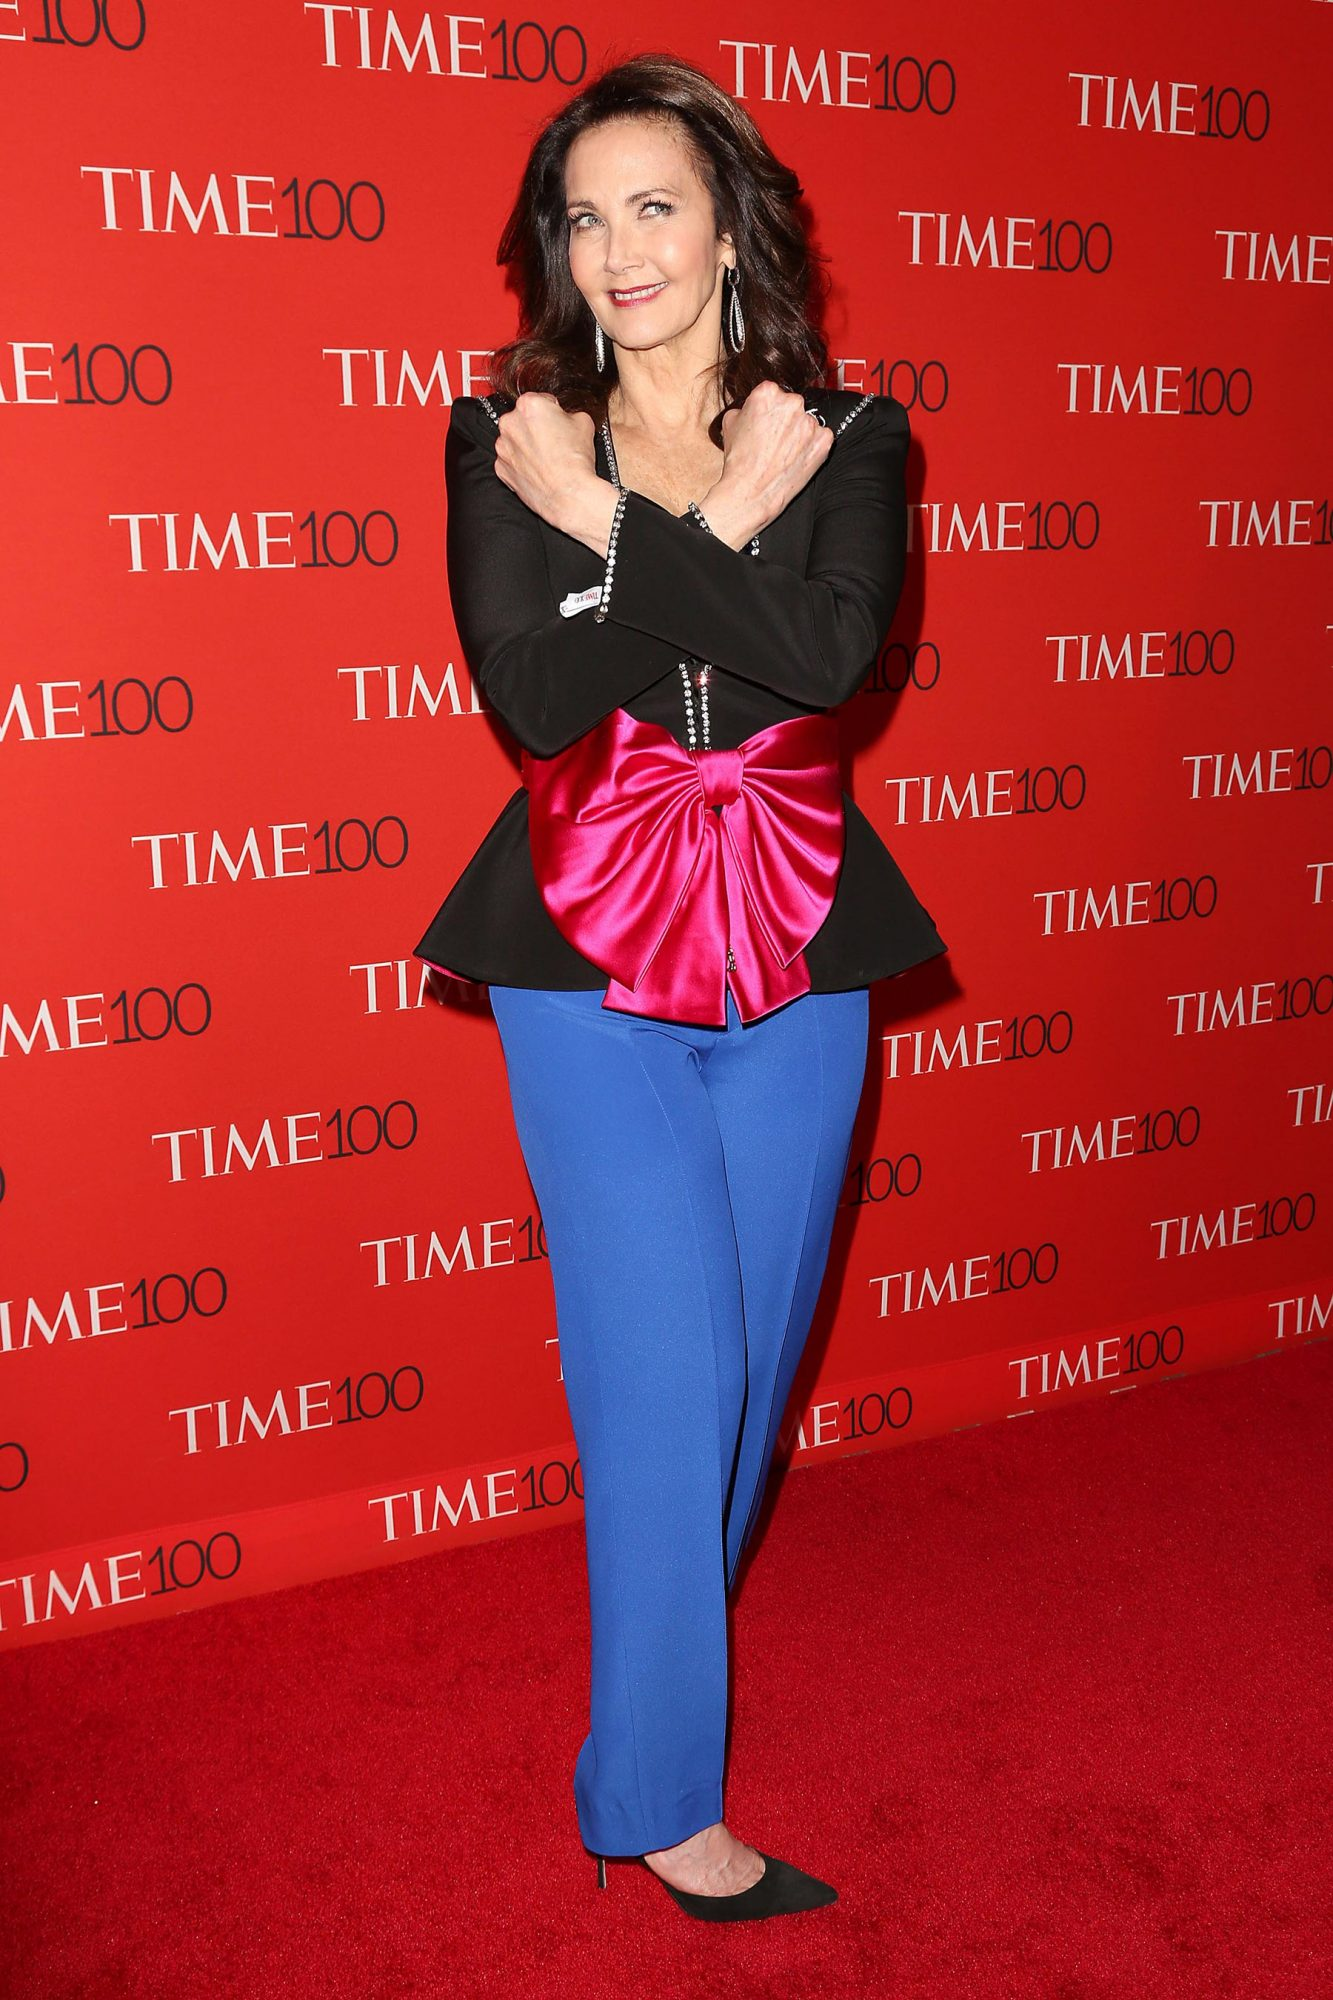 TIME 100 Most Influential People 2018 - Red Carpet Arrivals, New York, USA - 24 Apr 2018